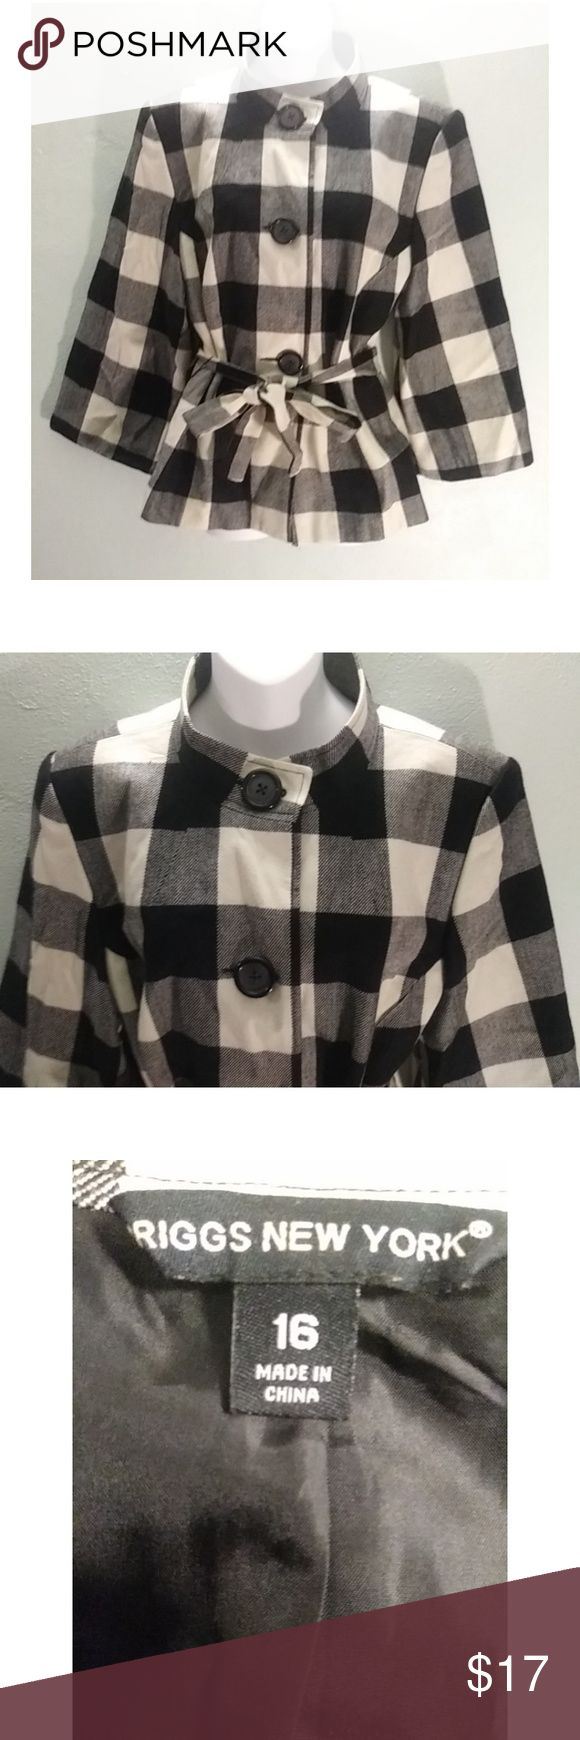 """Briggs New York black & white plaid jacket A classy Briggs New York black & white plaid jacket to showcase around the town in. Has a belt to define your shape. Size: 16 Underarms: 21"""" Arm length: 20"""" Length: 25"""" briggs new york Jackets & Coats"""